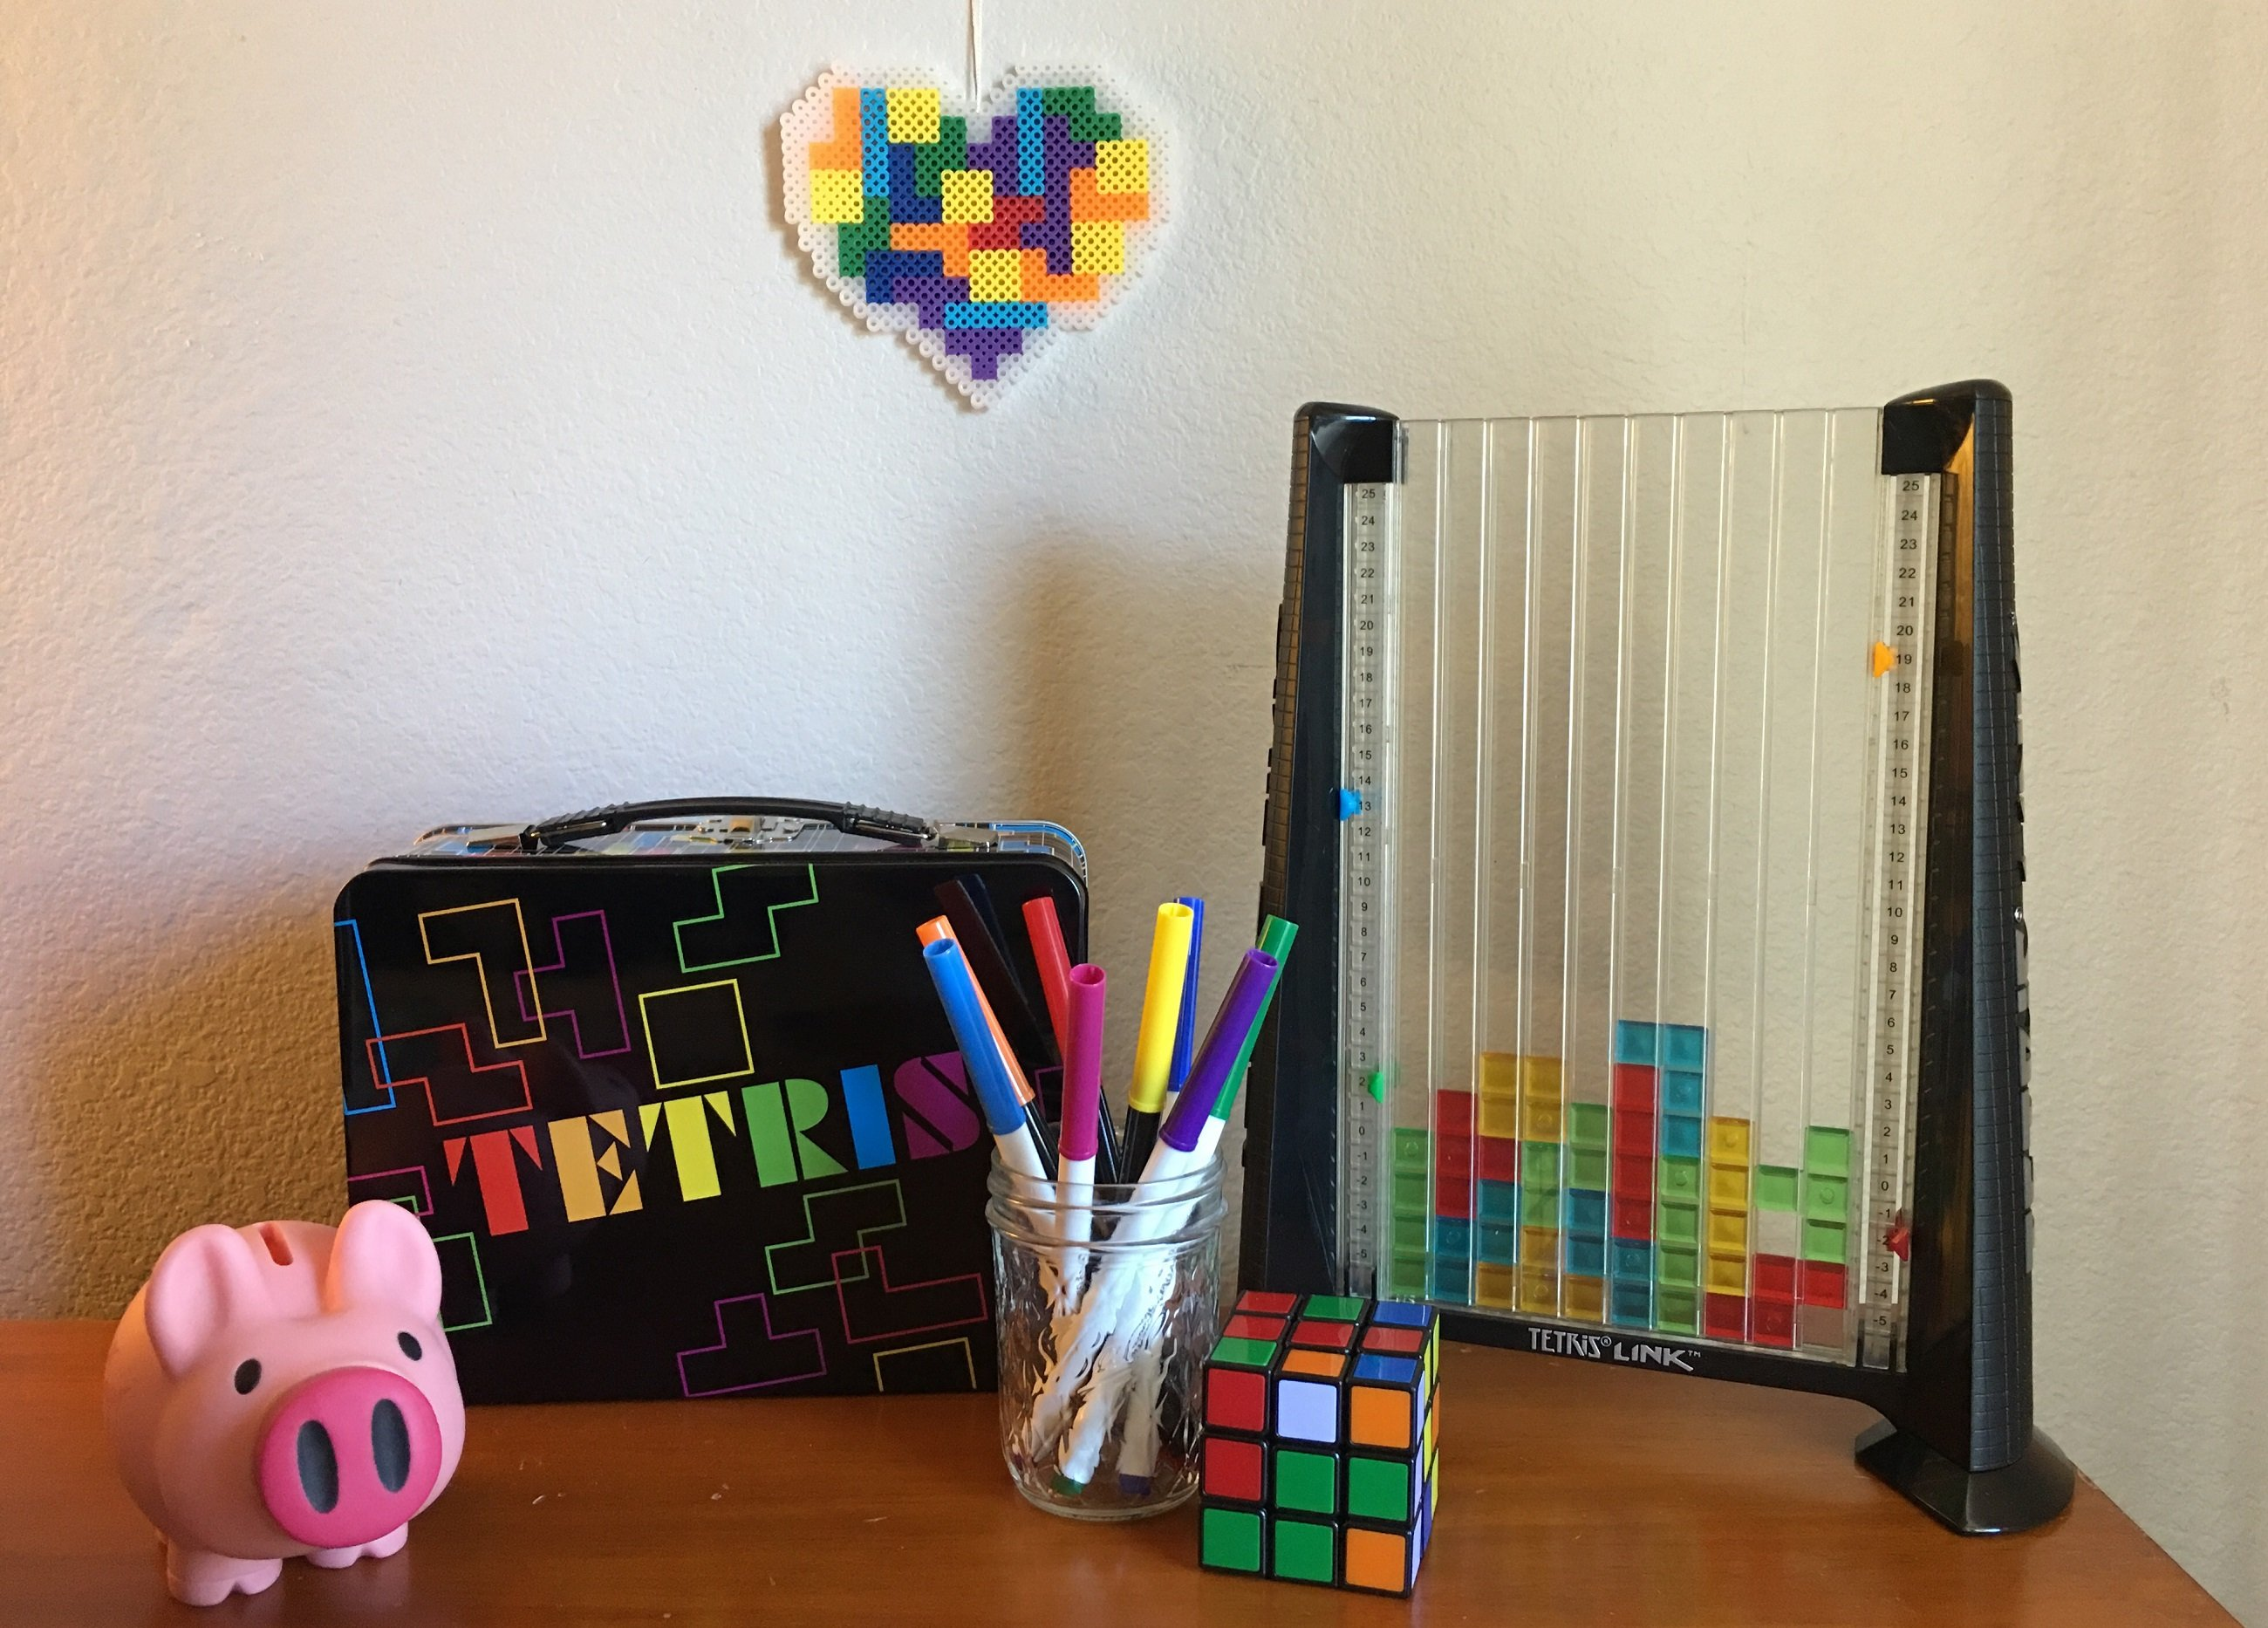 How to Add a Little Tetris Flair to Your Kid's Room